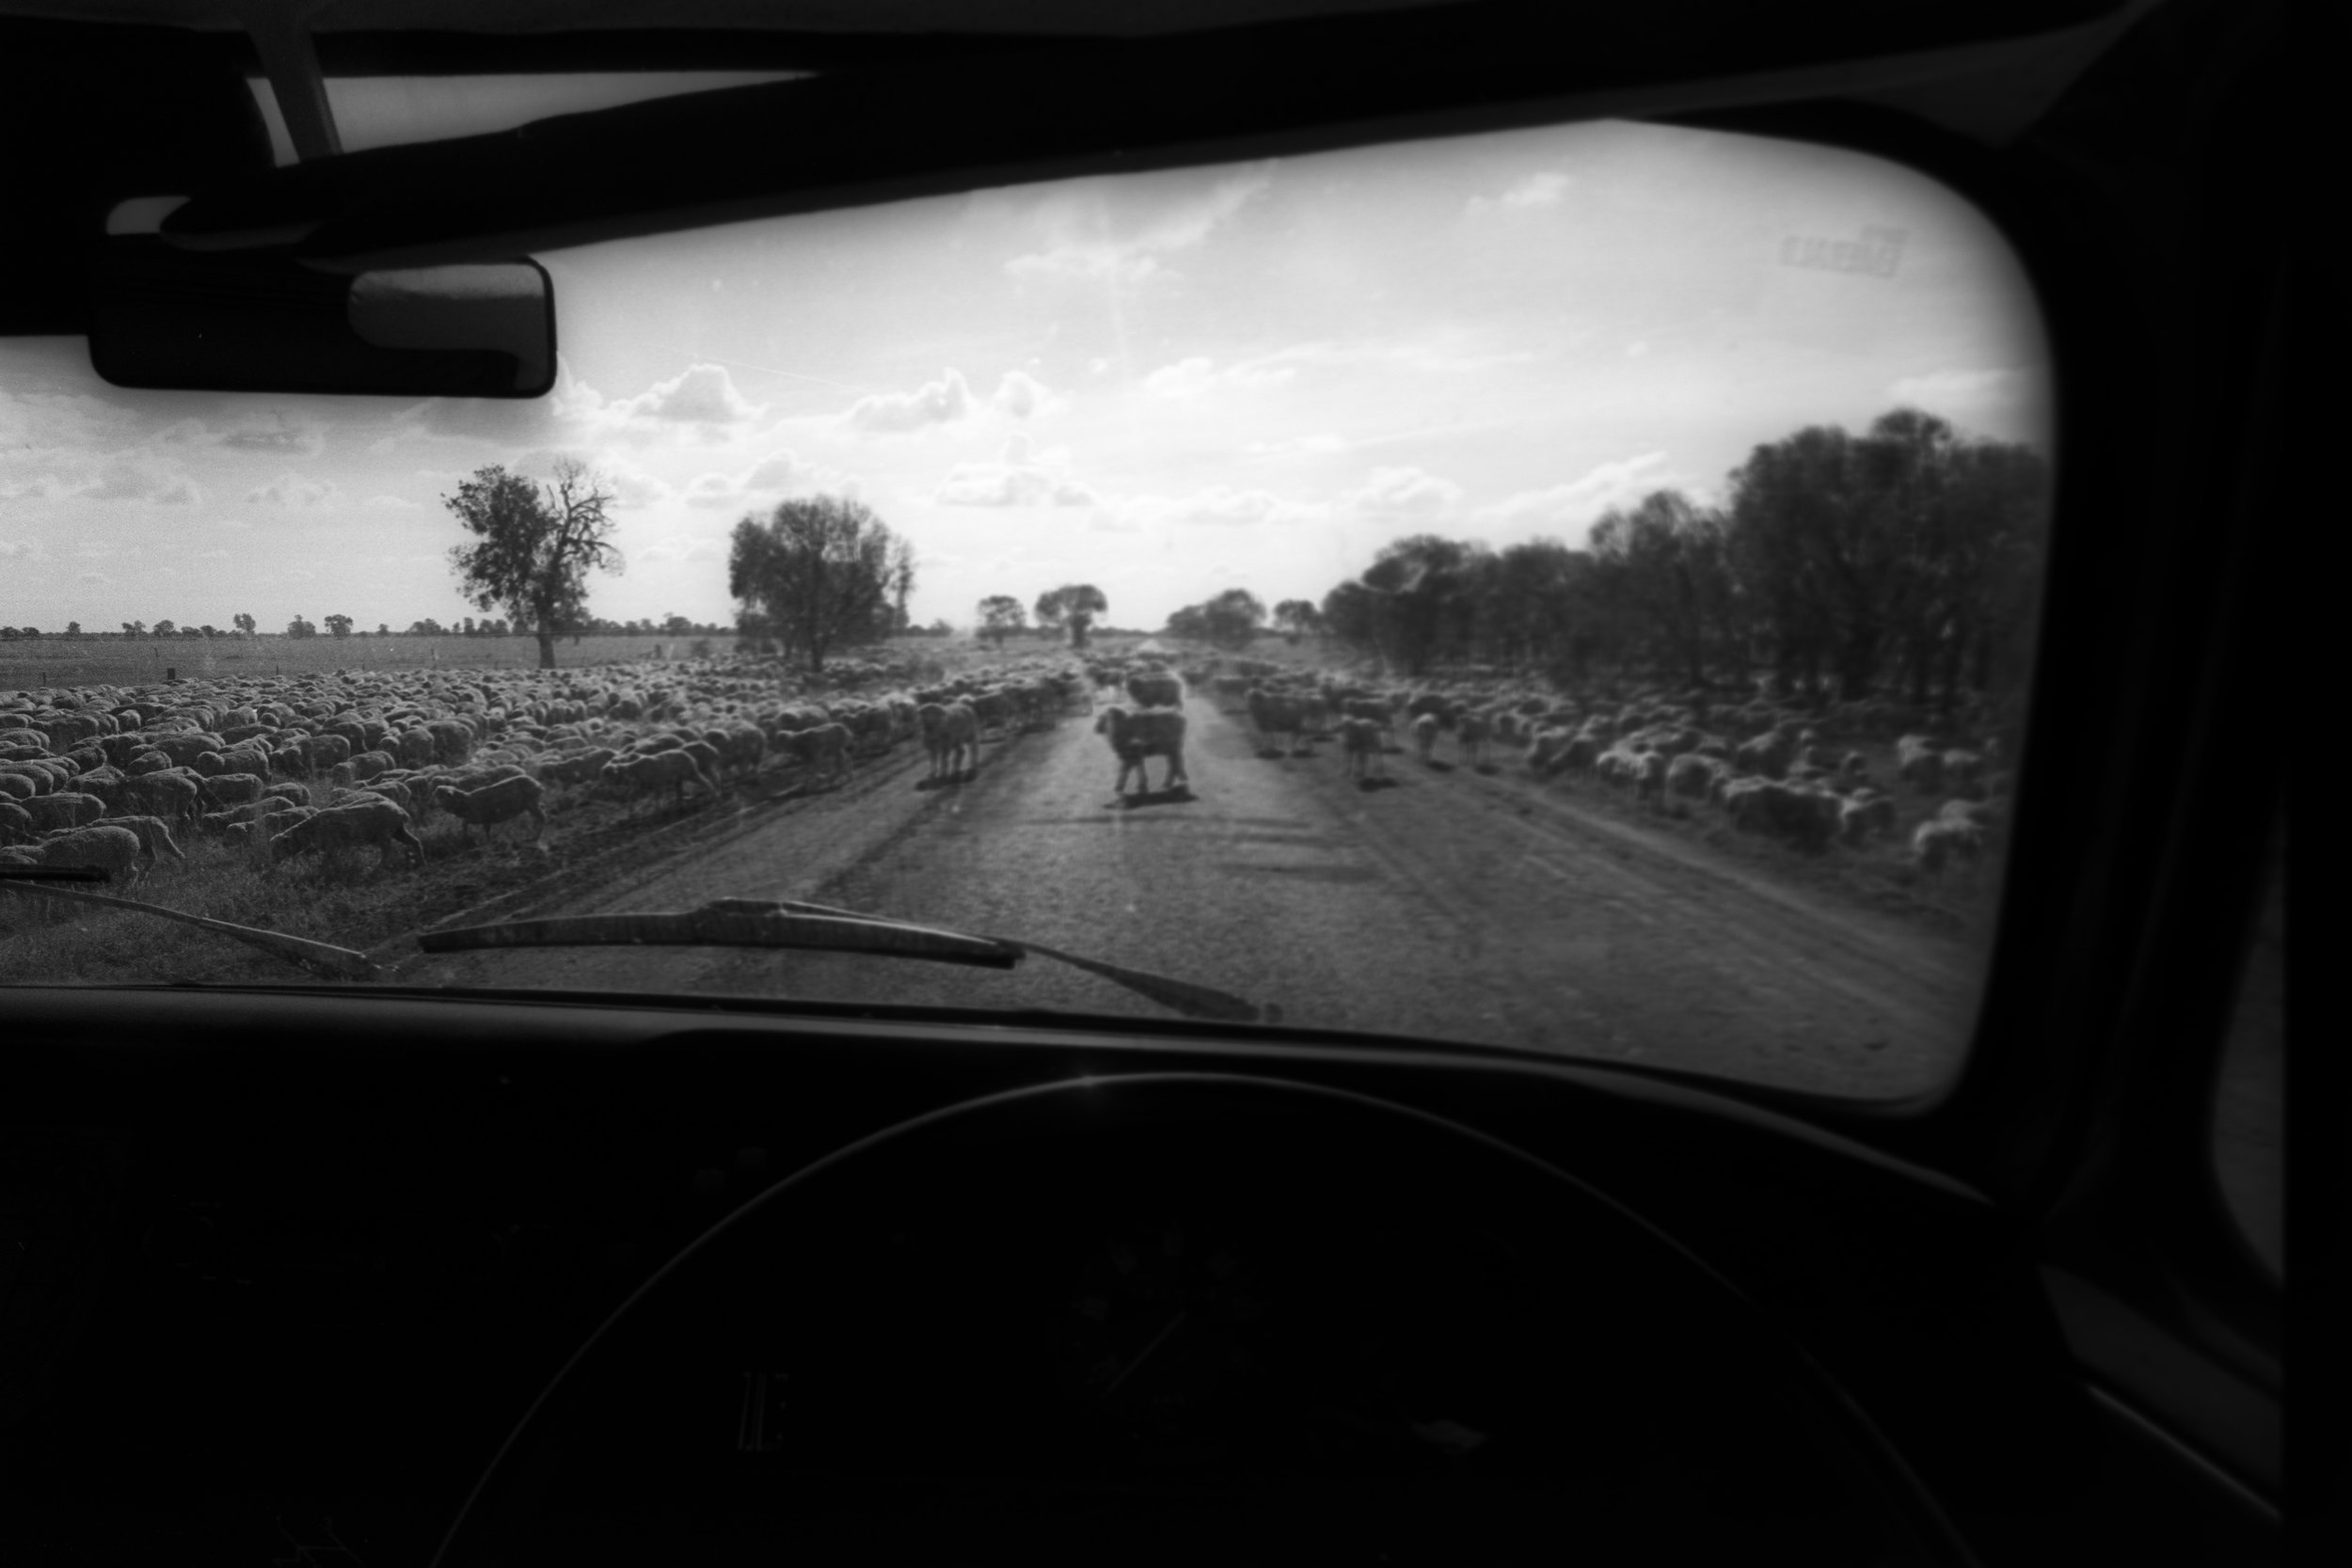 Colloquially know as the 'longest paddock'. During drought times in outback Australia, sheep are driven onto the verges of inland highways so they can feed on the remaing available grass. Outback NSW, Australia. 1995